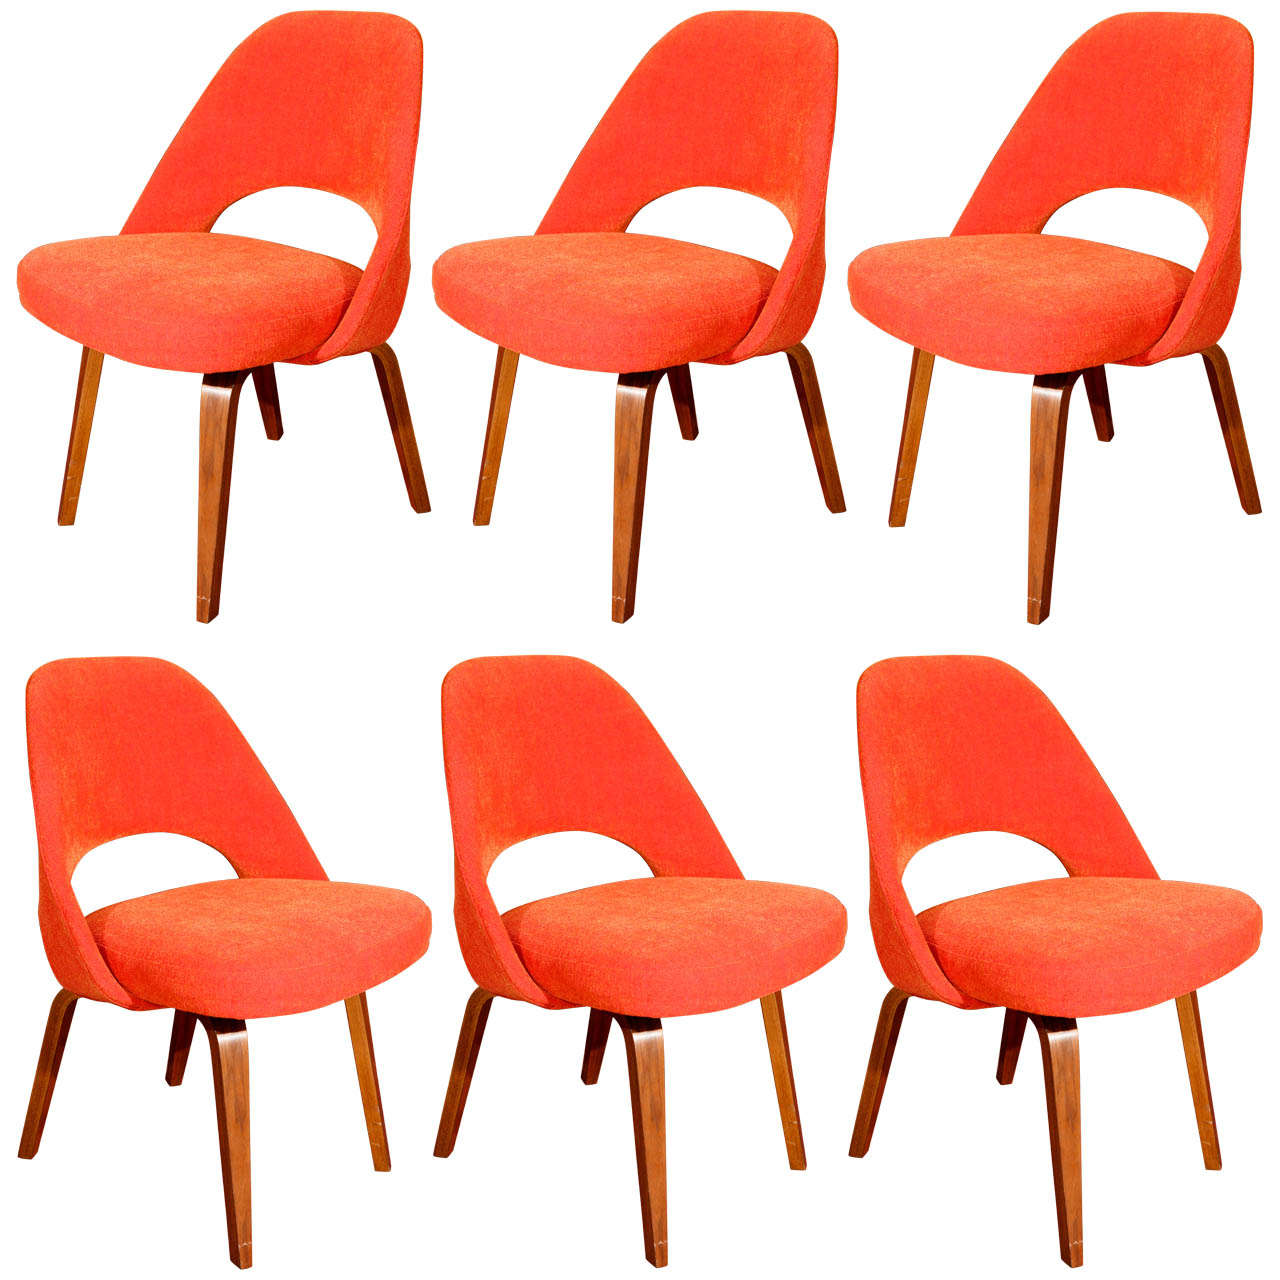 saarinen executive chairs with wood legs by knoll set of 6 at 1stdibs